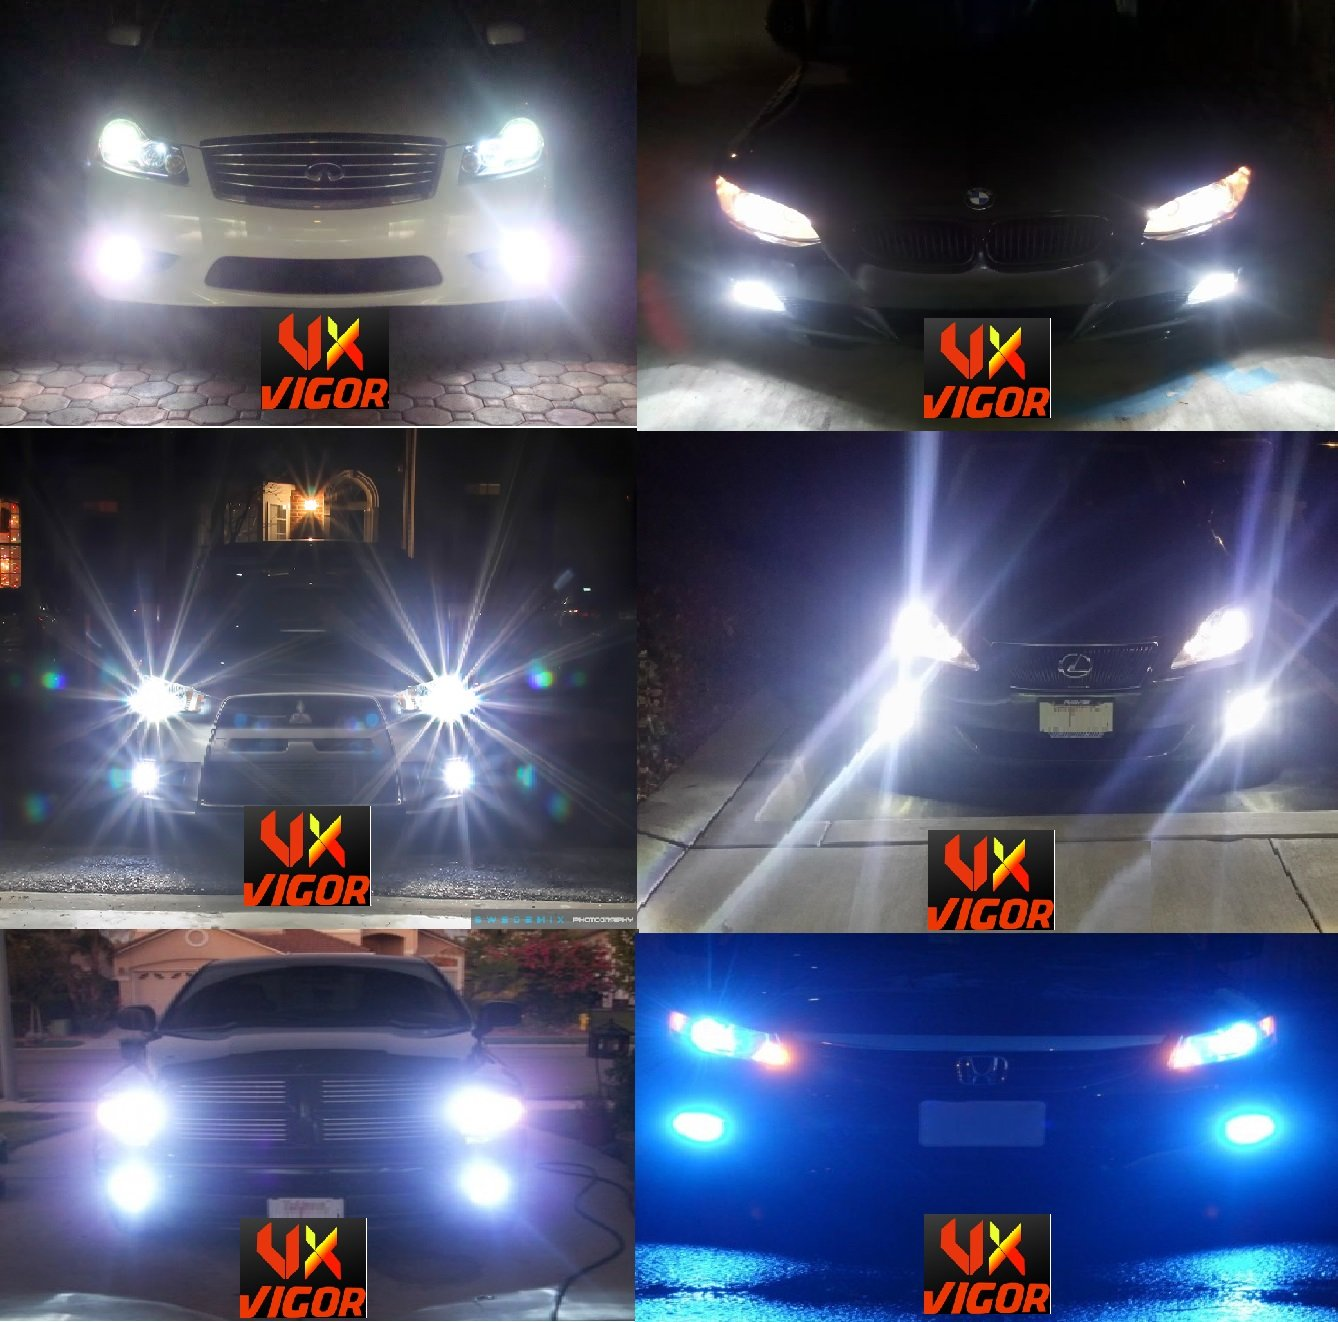 Amazon vigor 9006 hb4 xenon hid conversion kit 10k 10000k amazon vigor 9006 hb4 xenon hid conversion kit 10k 10000k deep blue dark blue premium slim ballasts built in ignitor two bulbs two ballasts nvjuhfo Choice Image